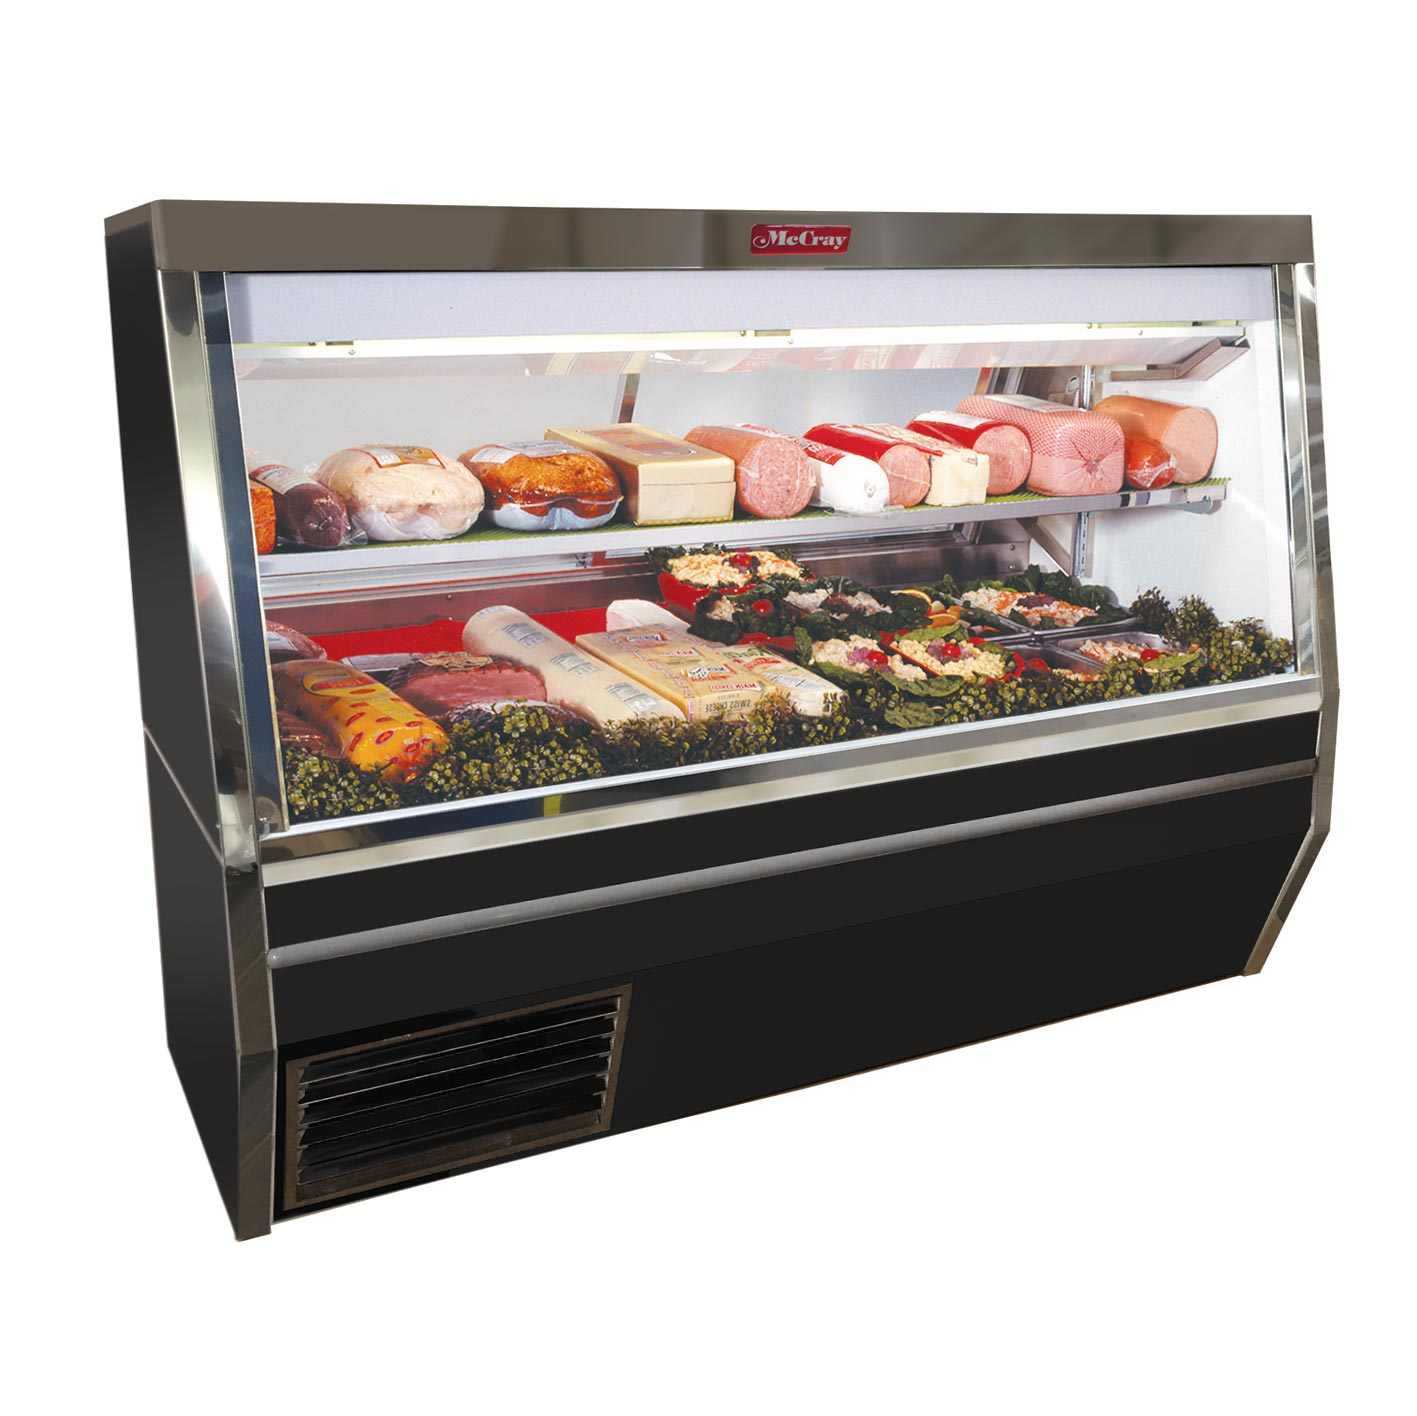 Howard-McCray SC-CDS34N-6-BE-LS-LED display case, refrigerated deli